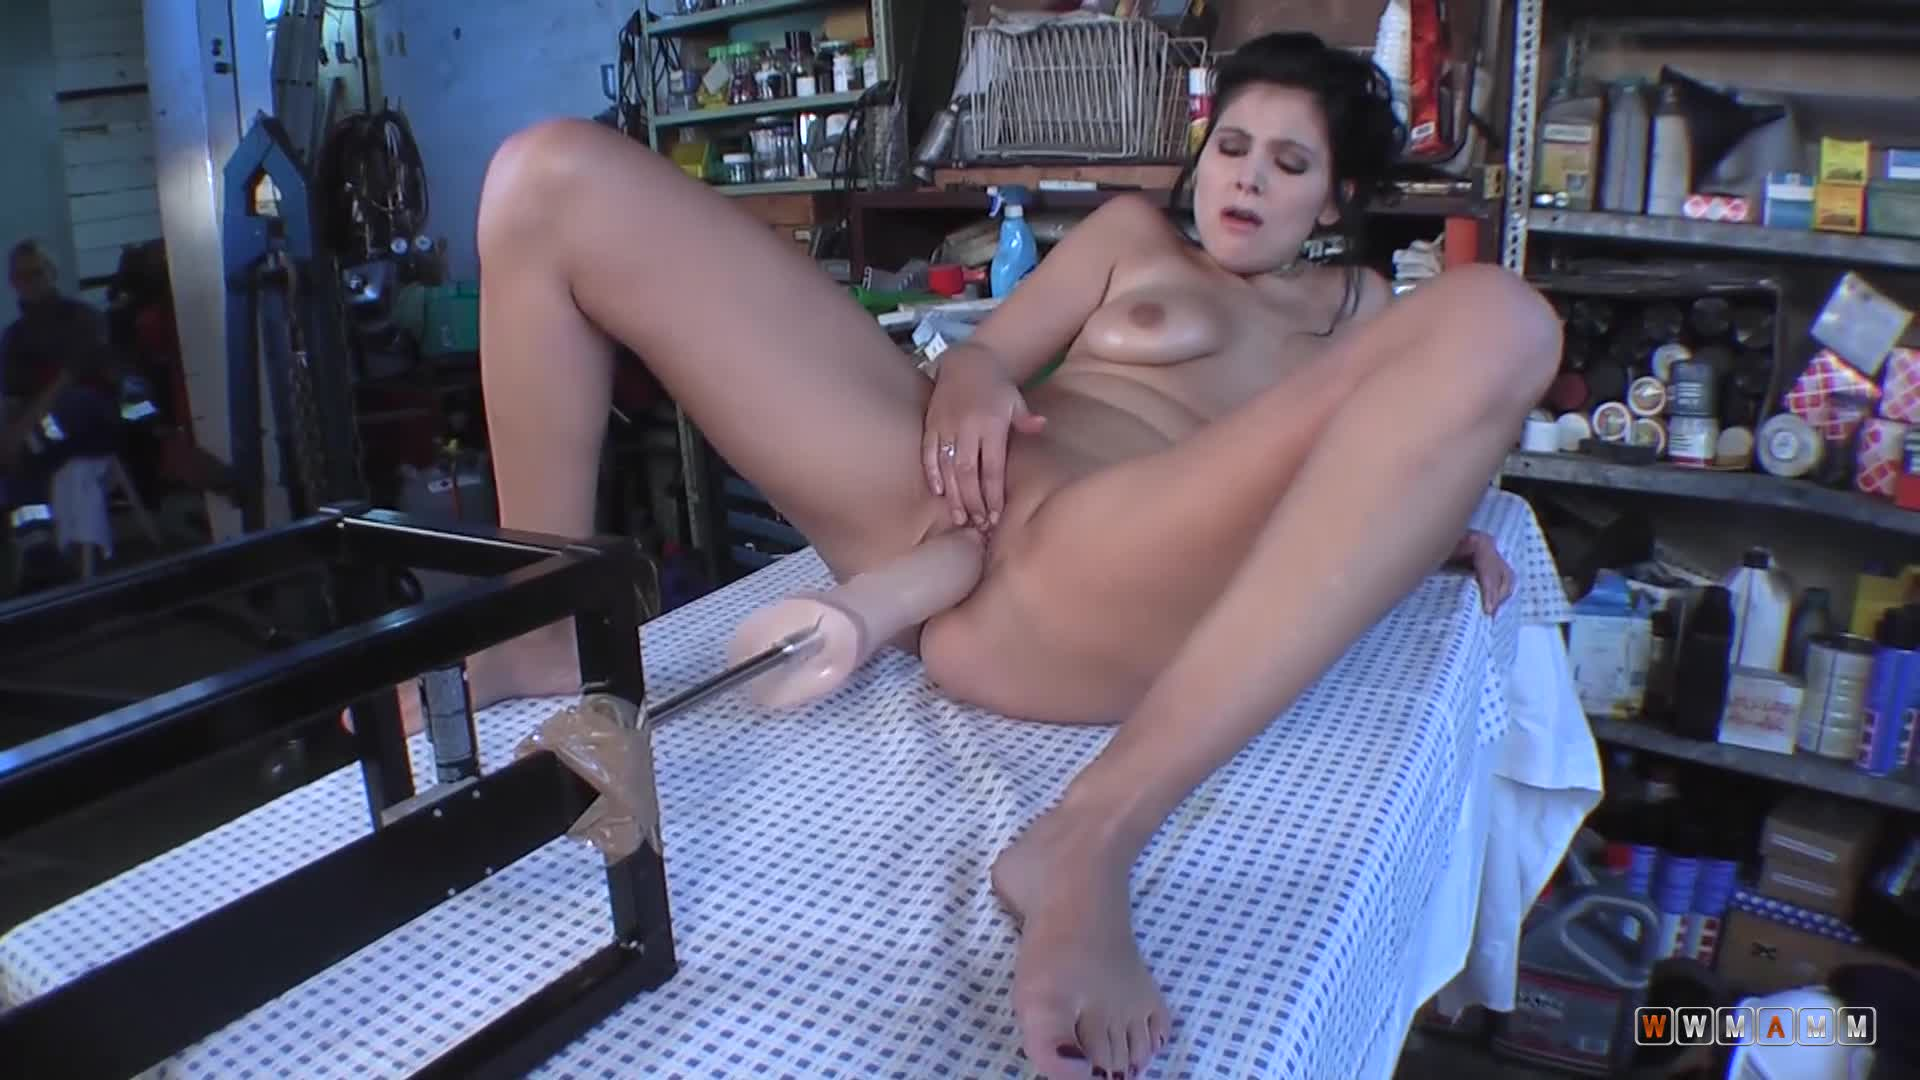 Horny Milf Asked To Try The Machine First Before Paying For It